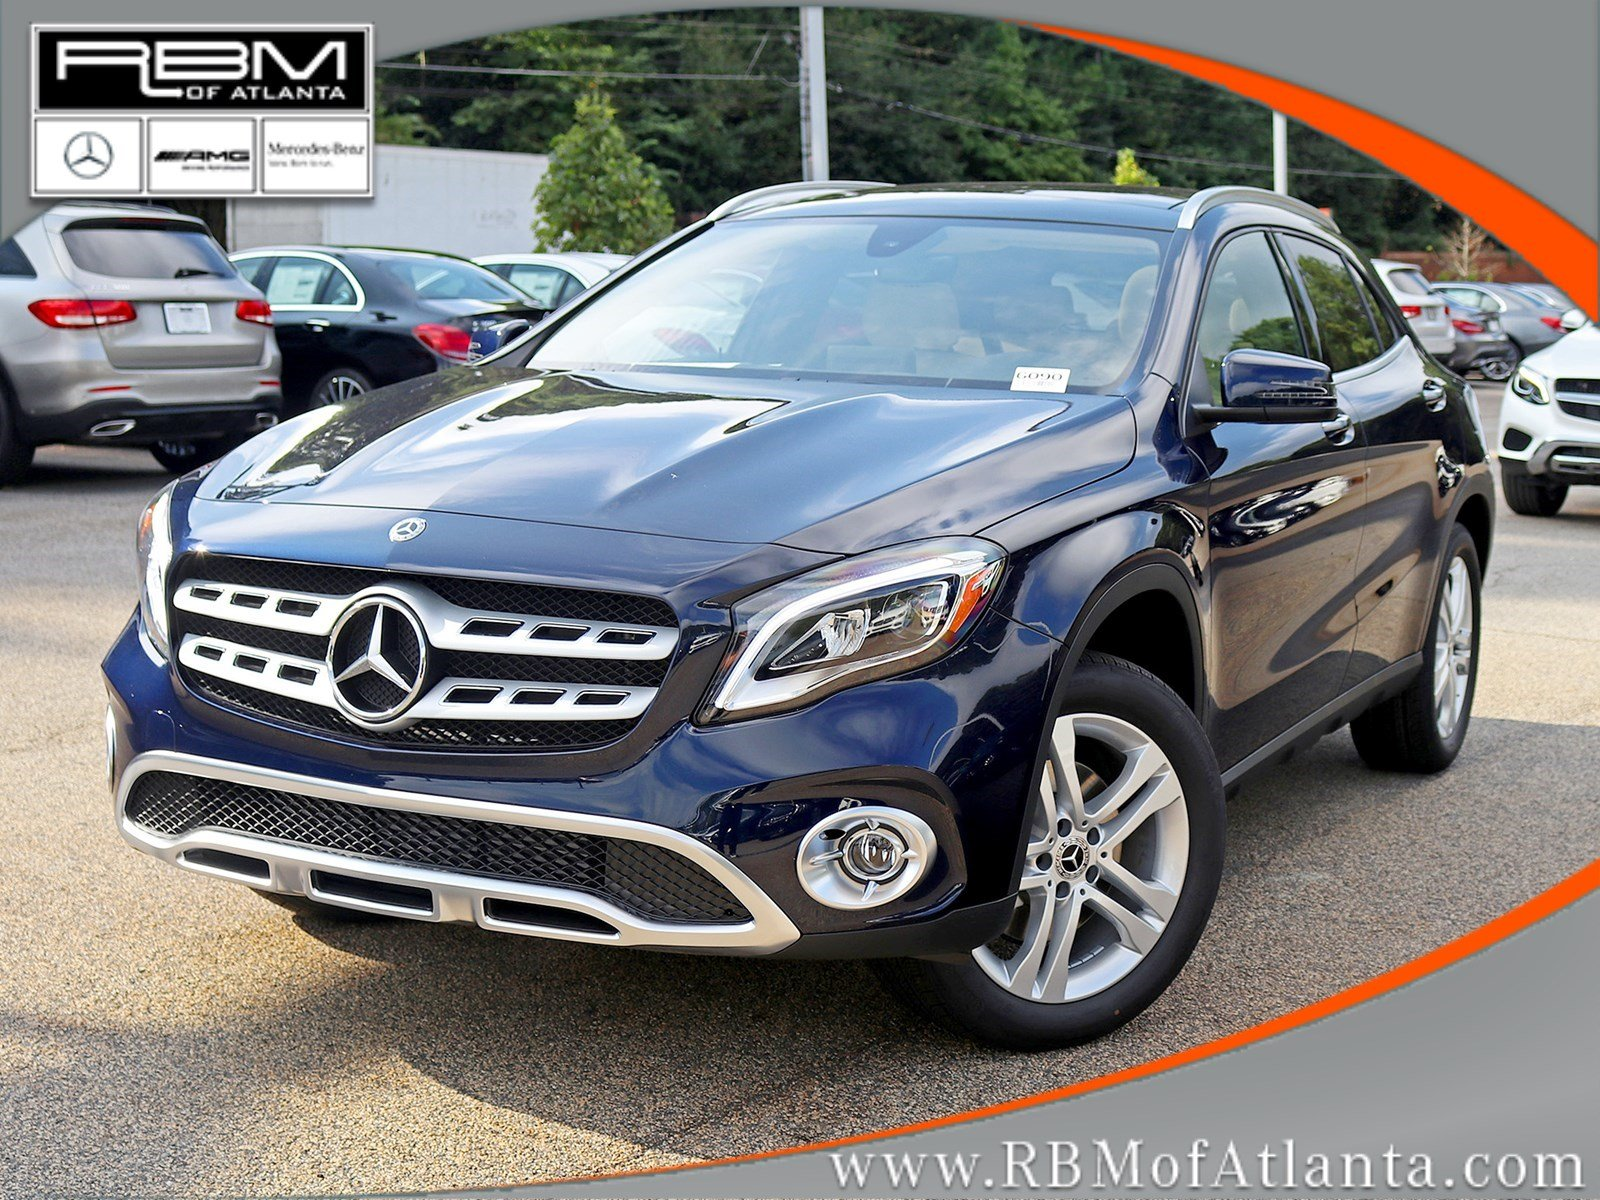 new 2019 mercedes benz gla gla 250 suv in atlanta g090. Black Bedroom Furniture Sets. Home Design Ideas